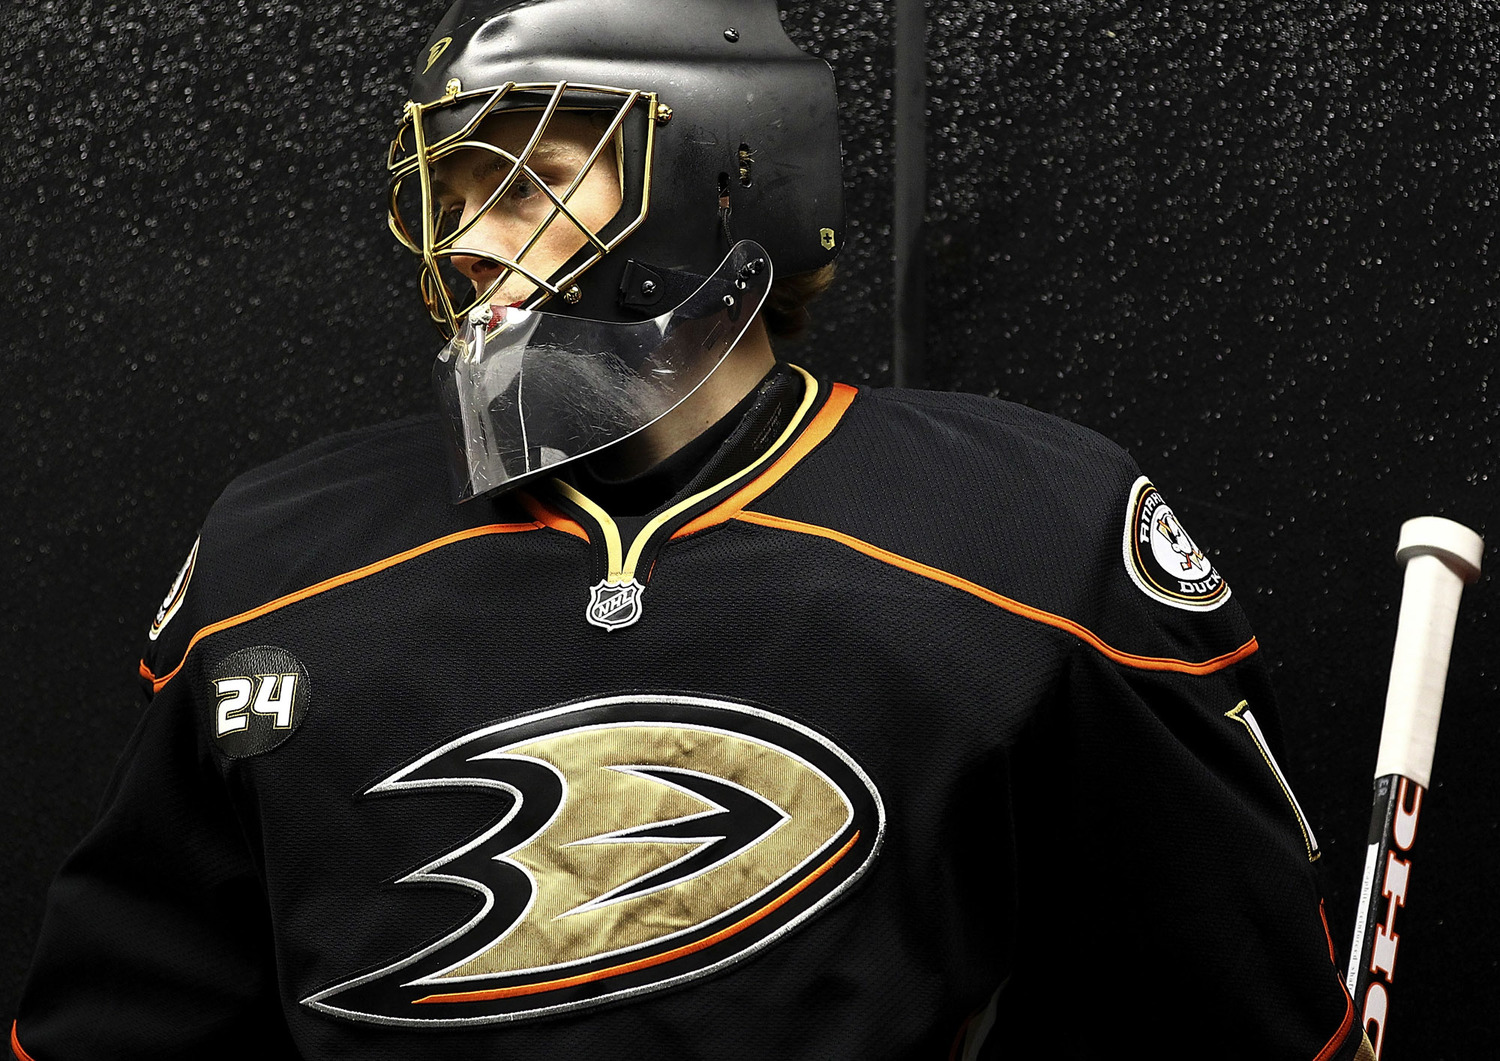 anaheim ducks 2010 rebranding logo on uniform by fanbrandz